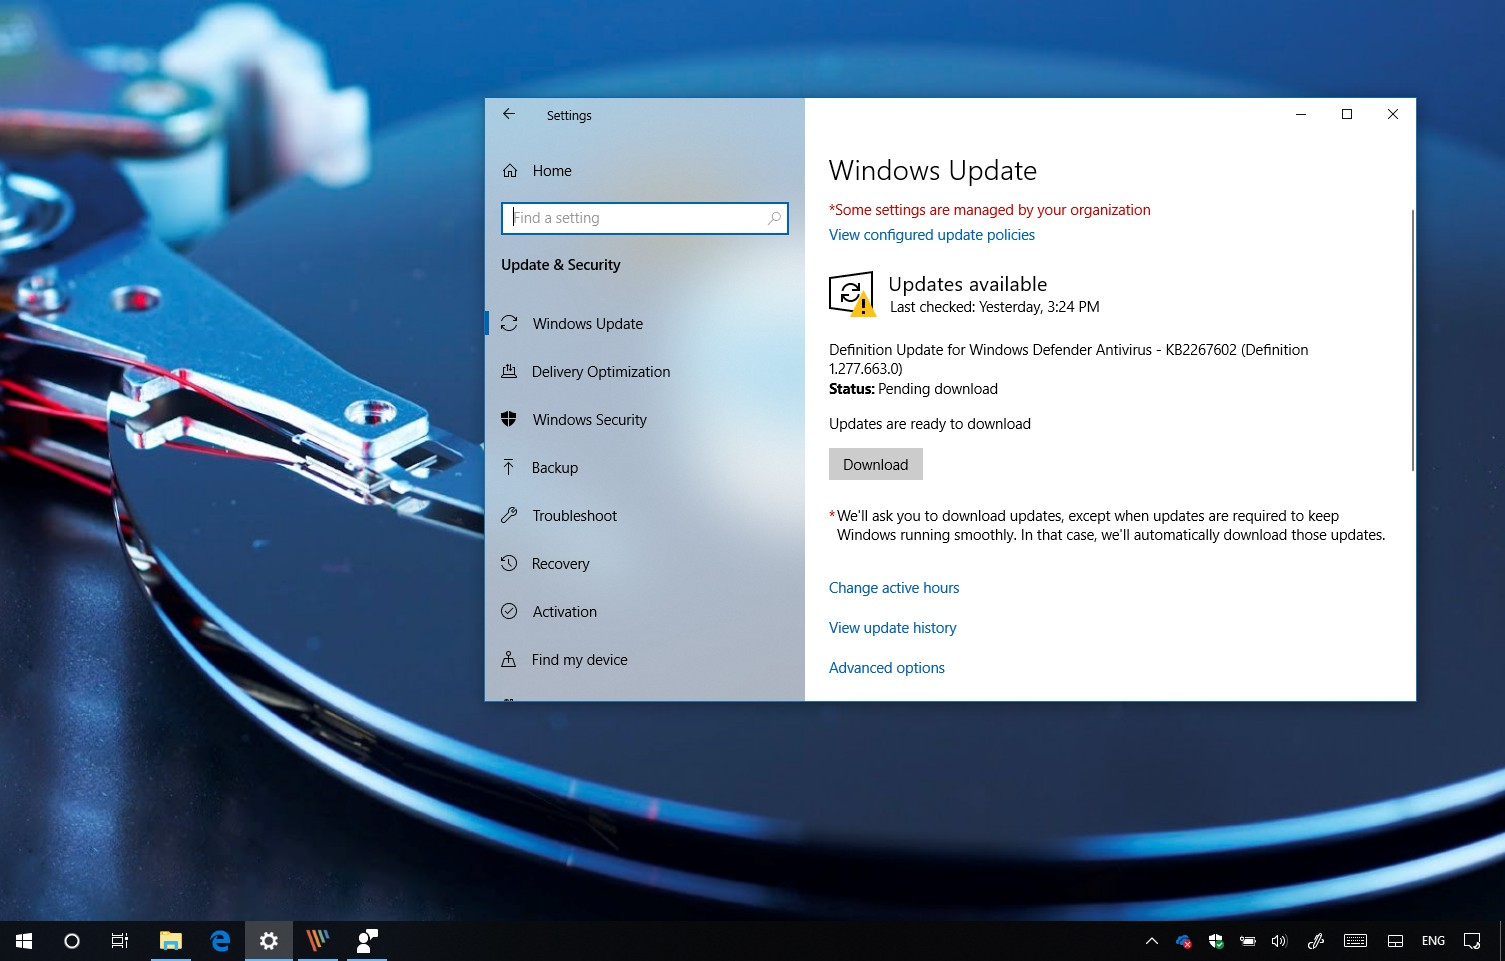 Windows 10 October 2018 Update, version 1809, pulled due to data